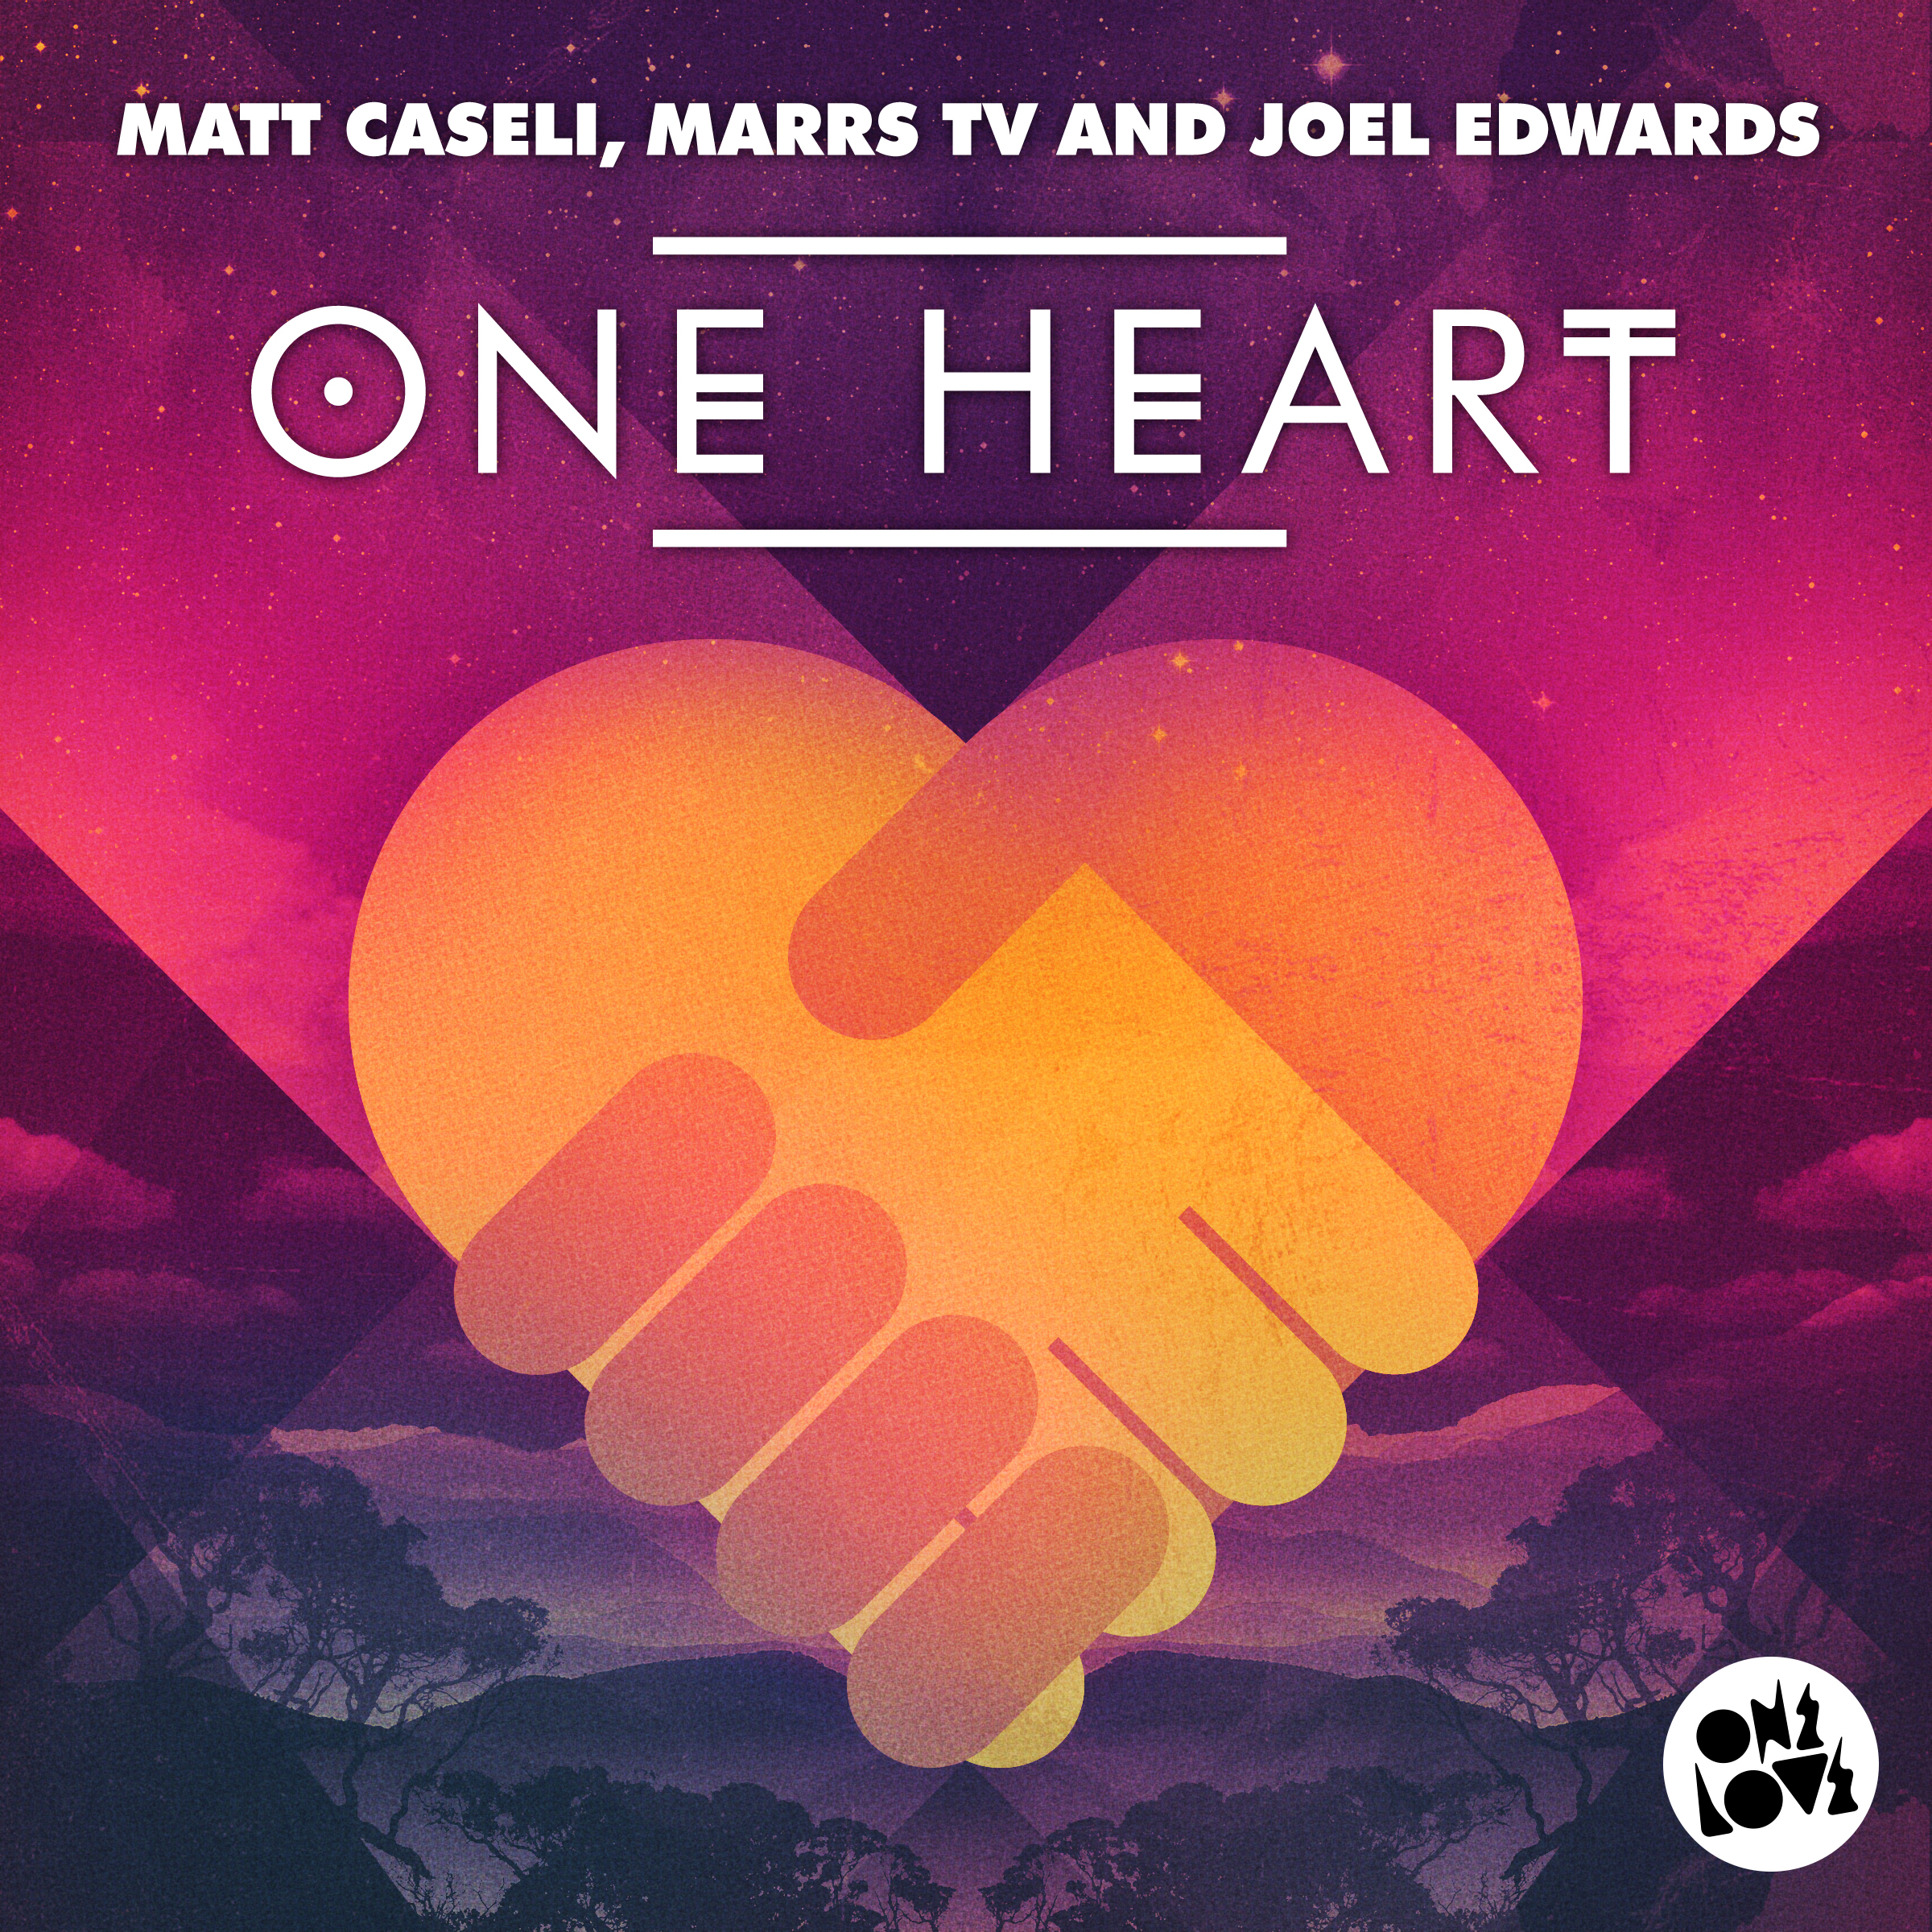 matt_caseli_ONE_HEART_delivered